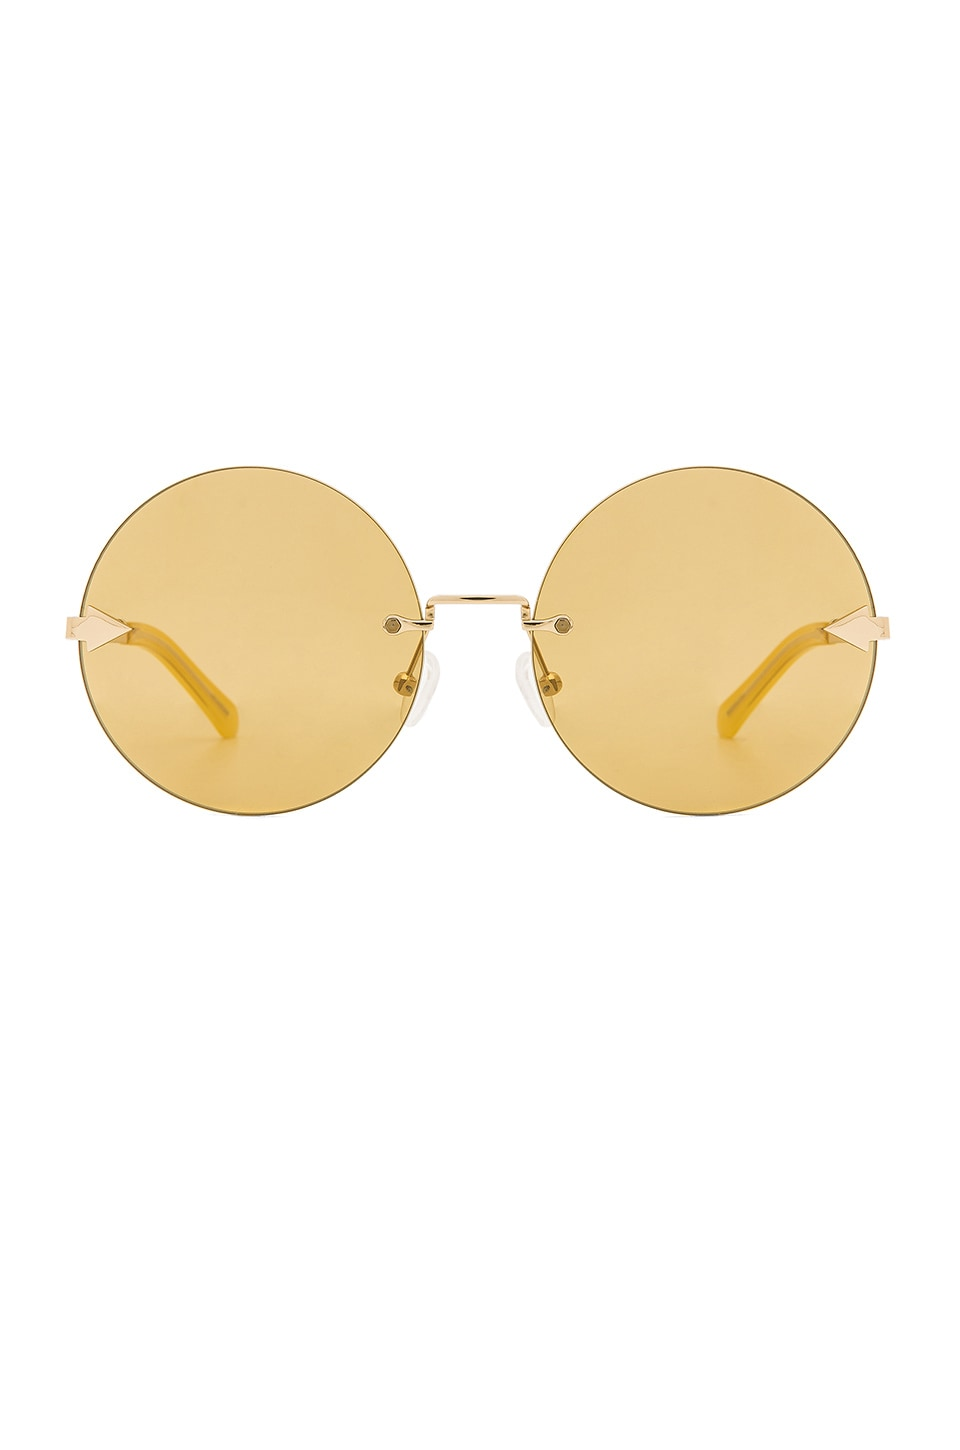 Karen Walker Disco Circus in Marigold & Gold